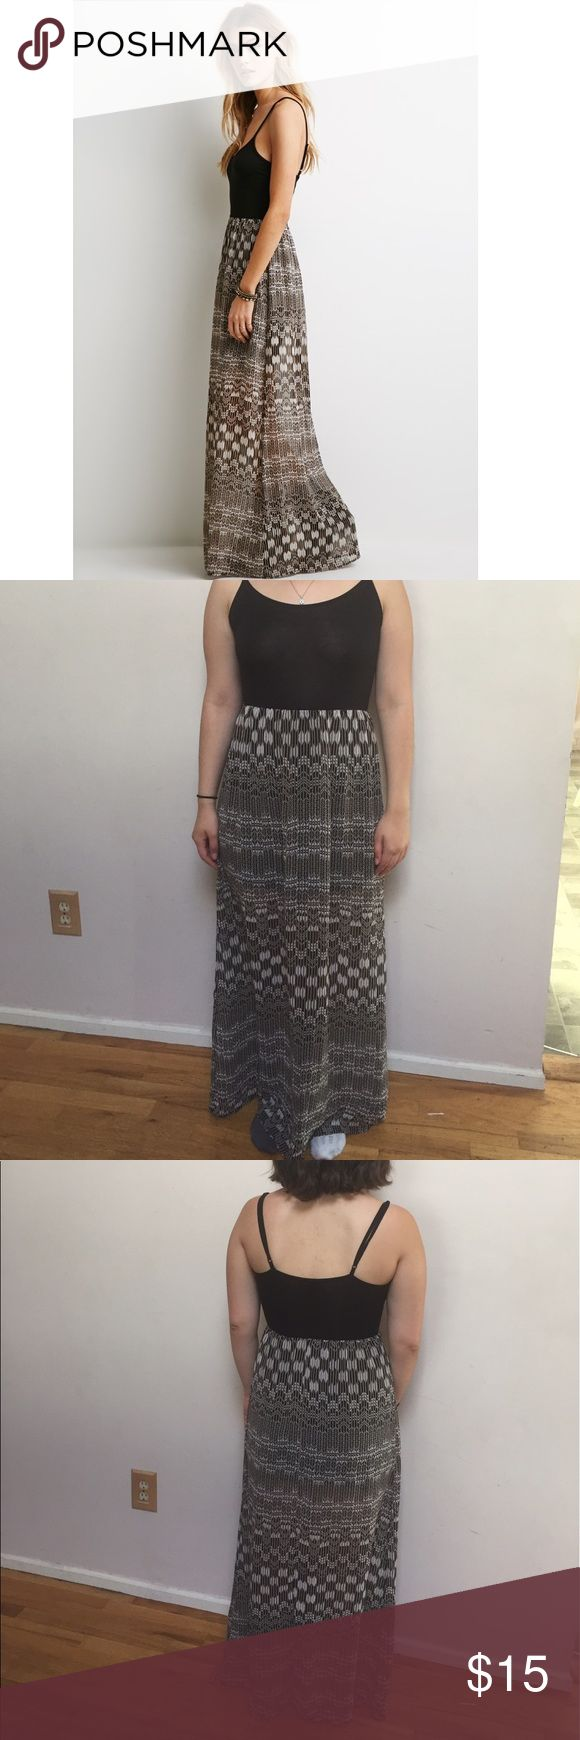 Tribal Maxi Dress Really adorable maxi dress with a black sleeveless top. The bottom is sheer with a black slip attached underneath. It's only been worn a few times. It's in perfect condition except for one pull in the sheer bottom (pictured above), but it is barely noticeable. Great for the summer with a pair of brown sandals. Forever 21 Dresses Maxi